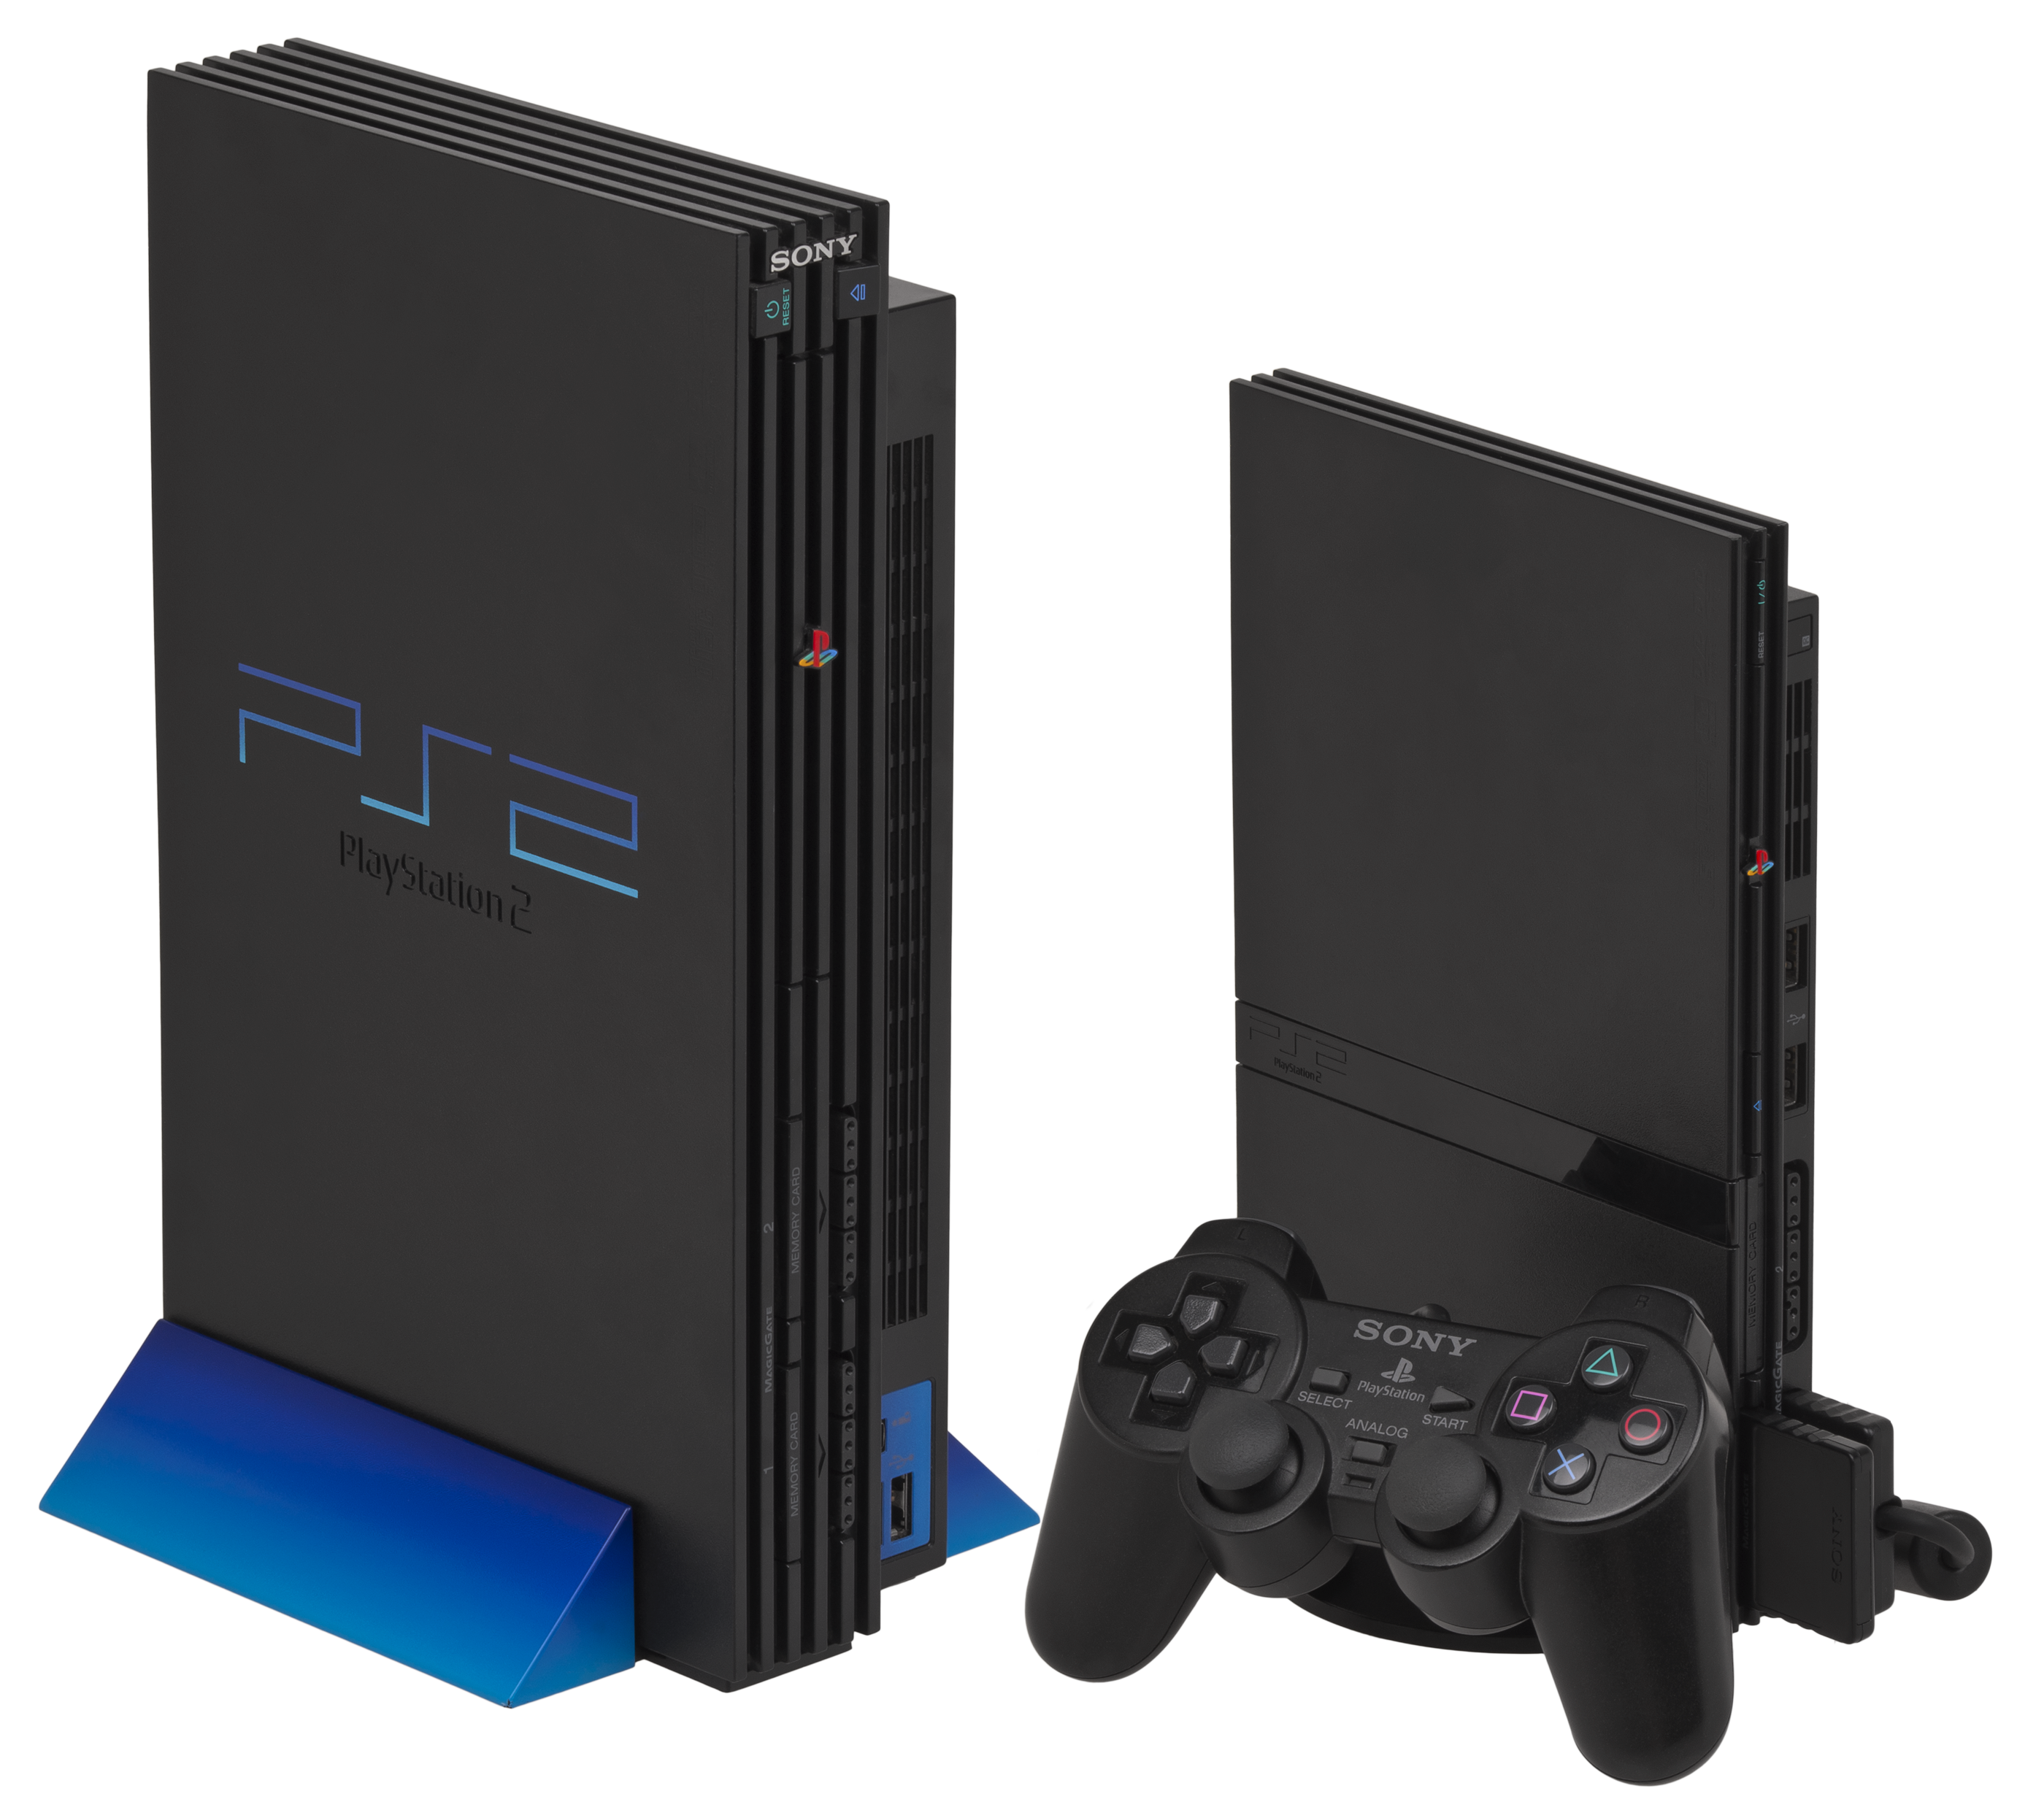 Playstation 2 png. File ps versions wikimedia